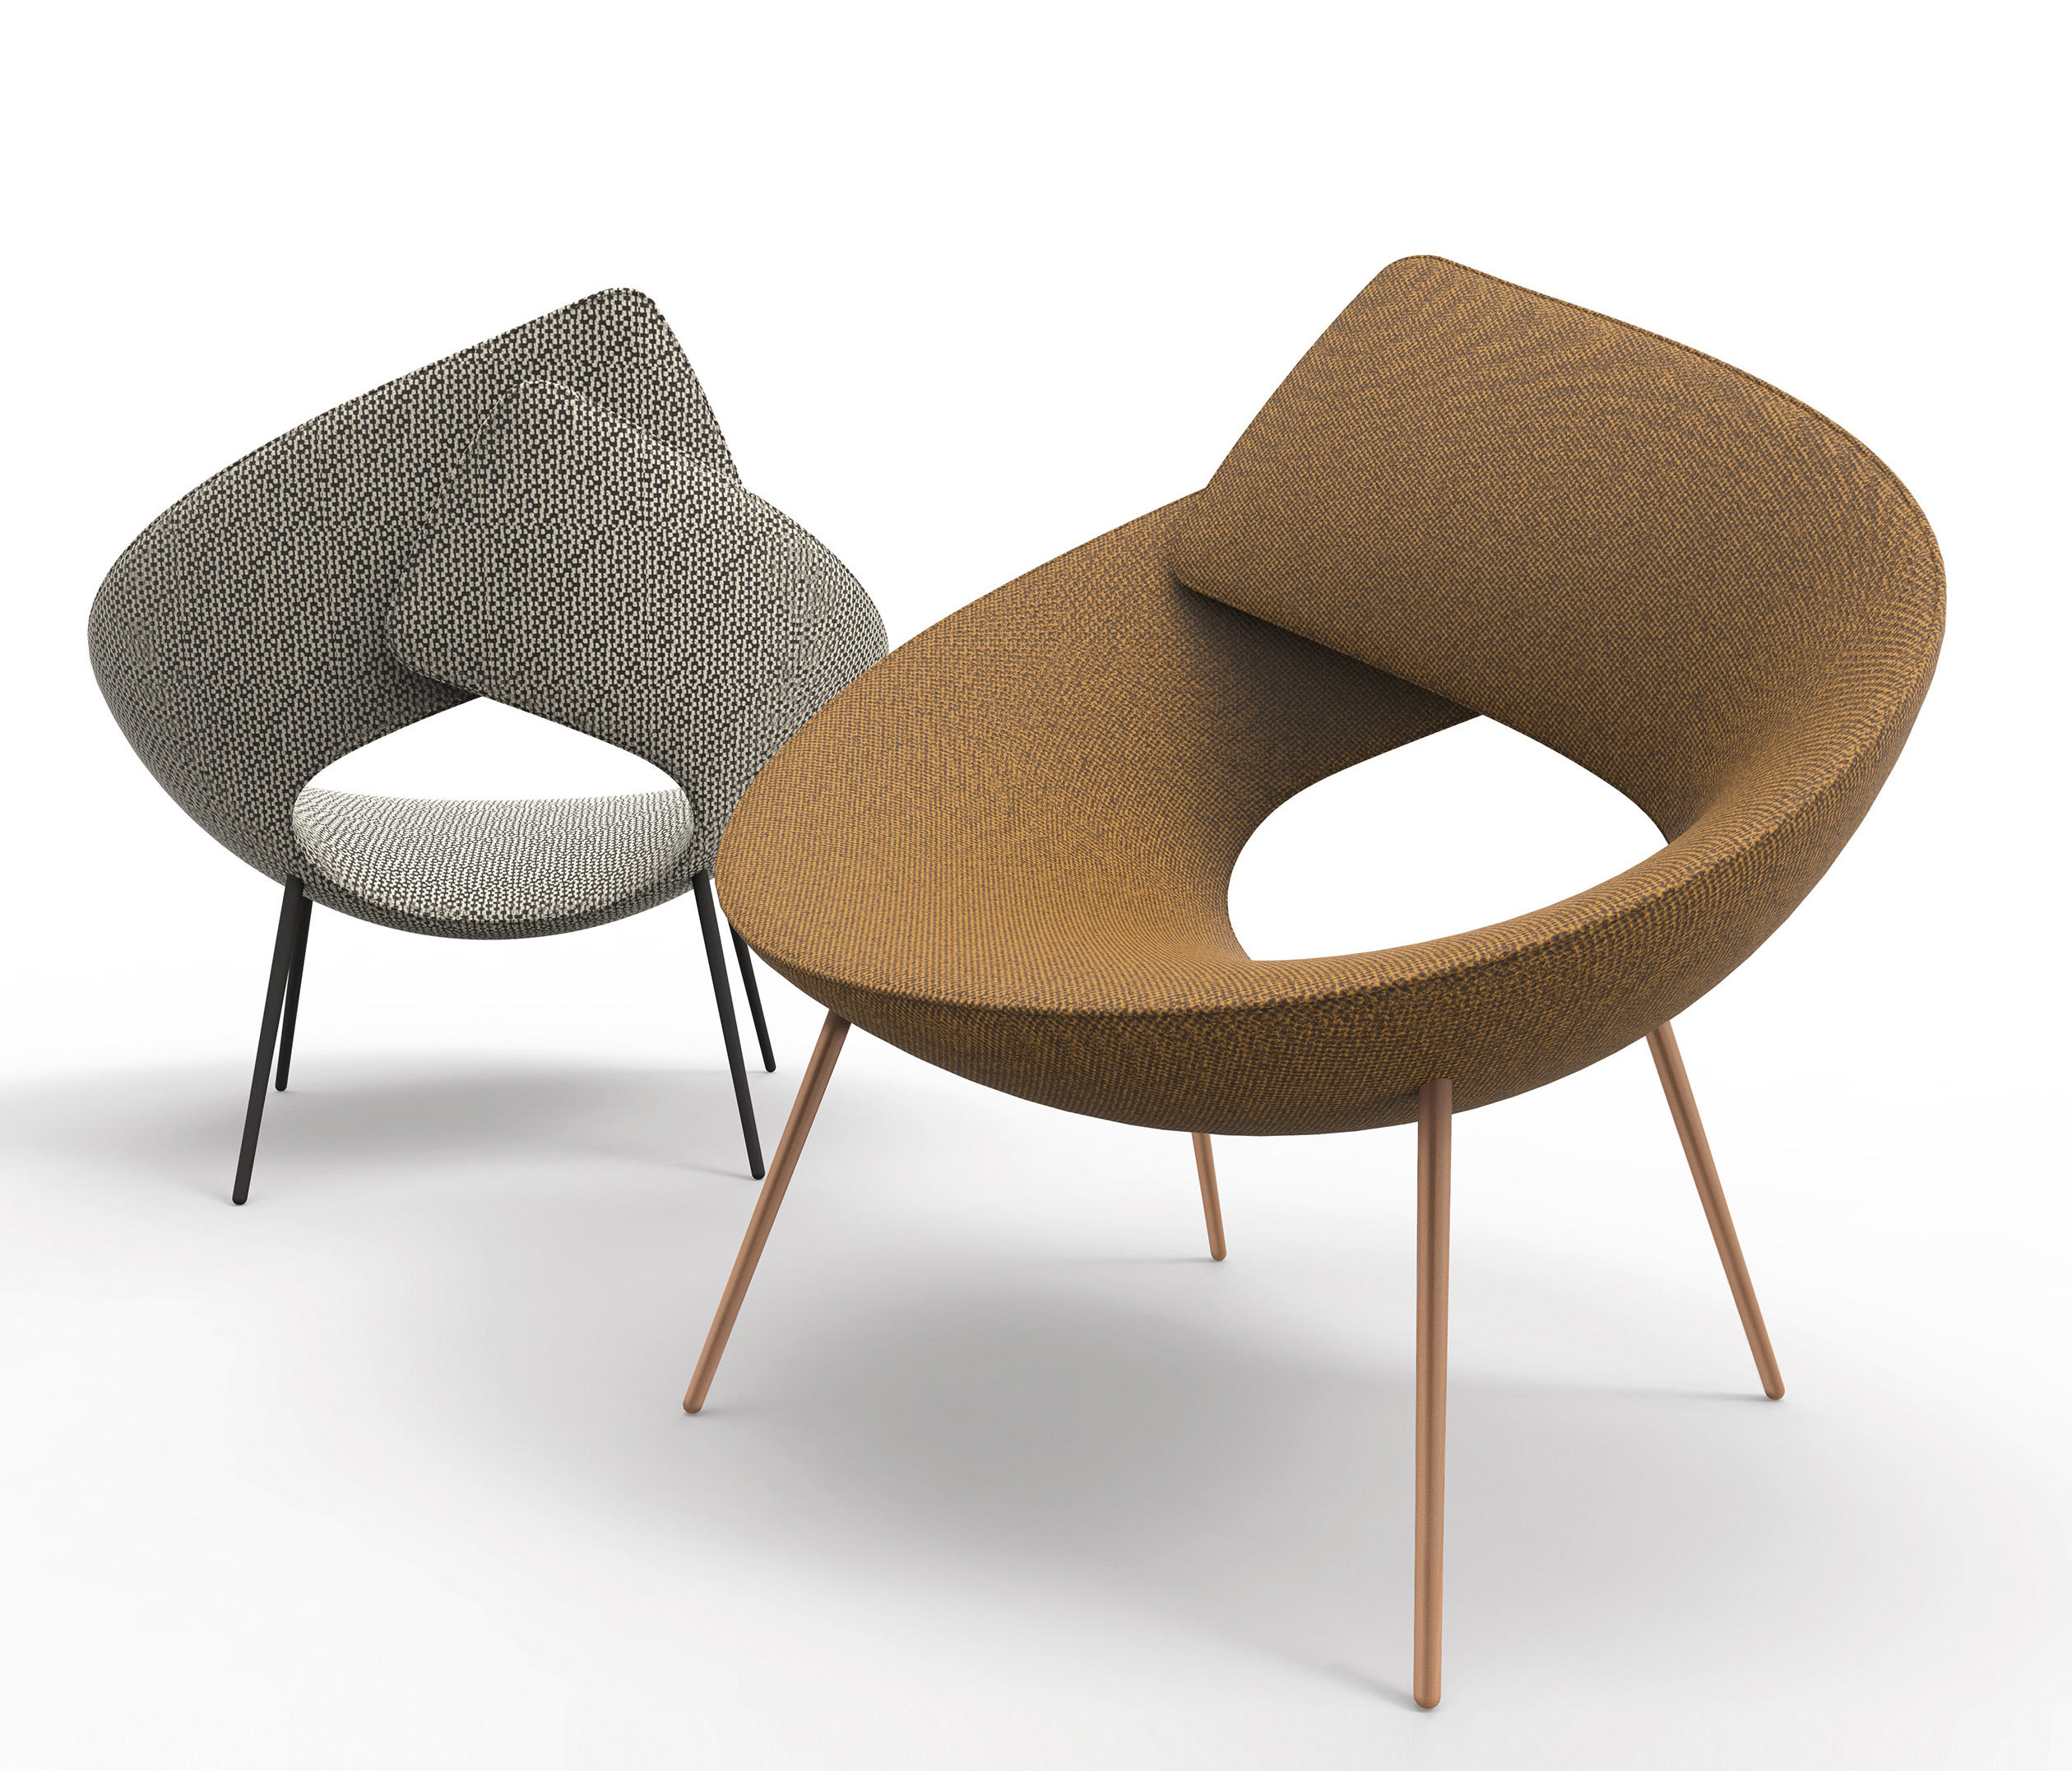 Lock Lounge Chair by Alessandro Busana for Bonaldo